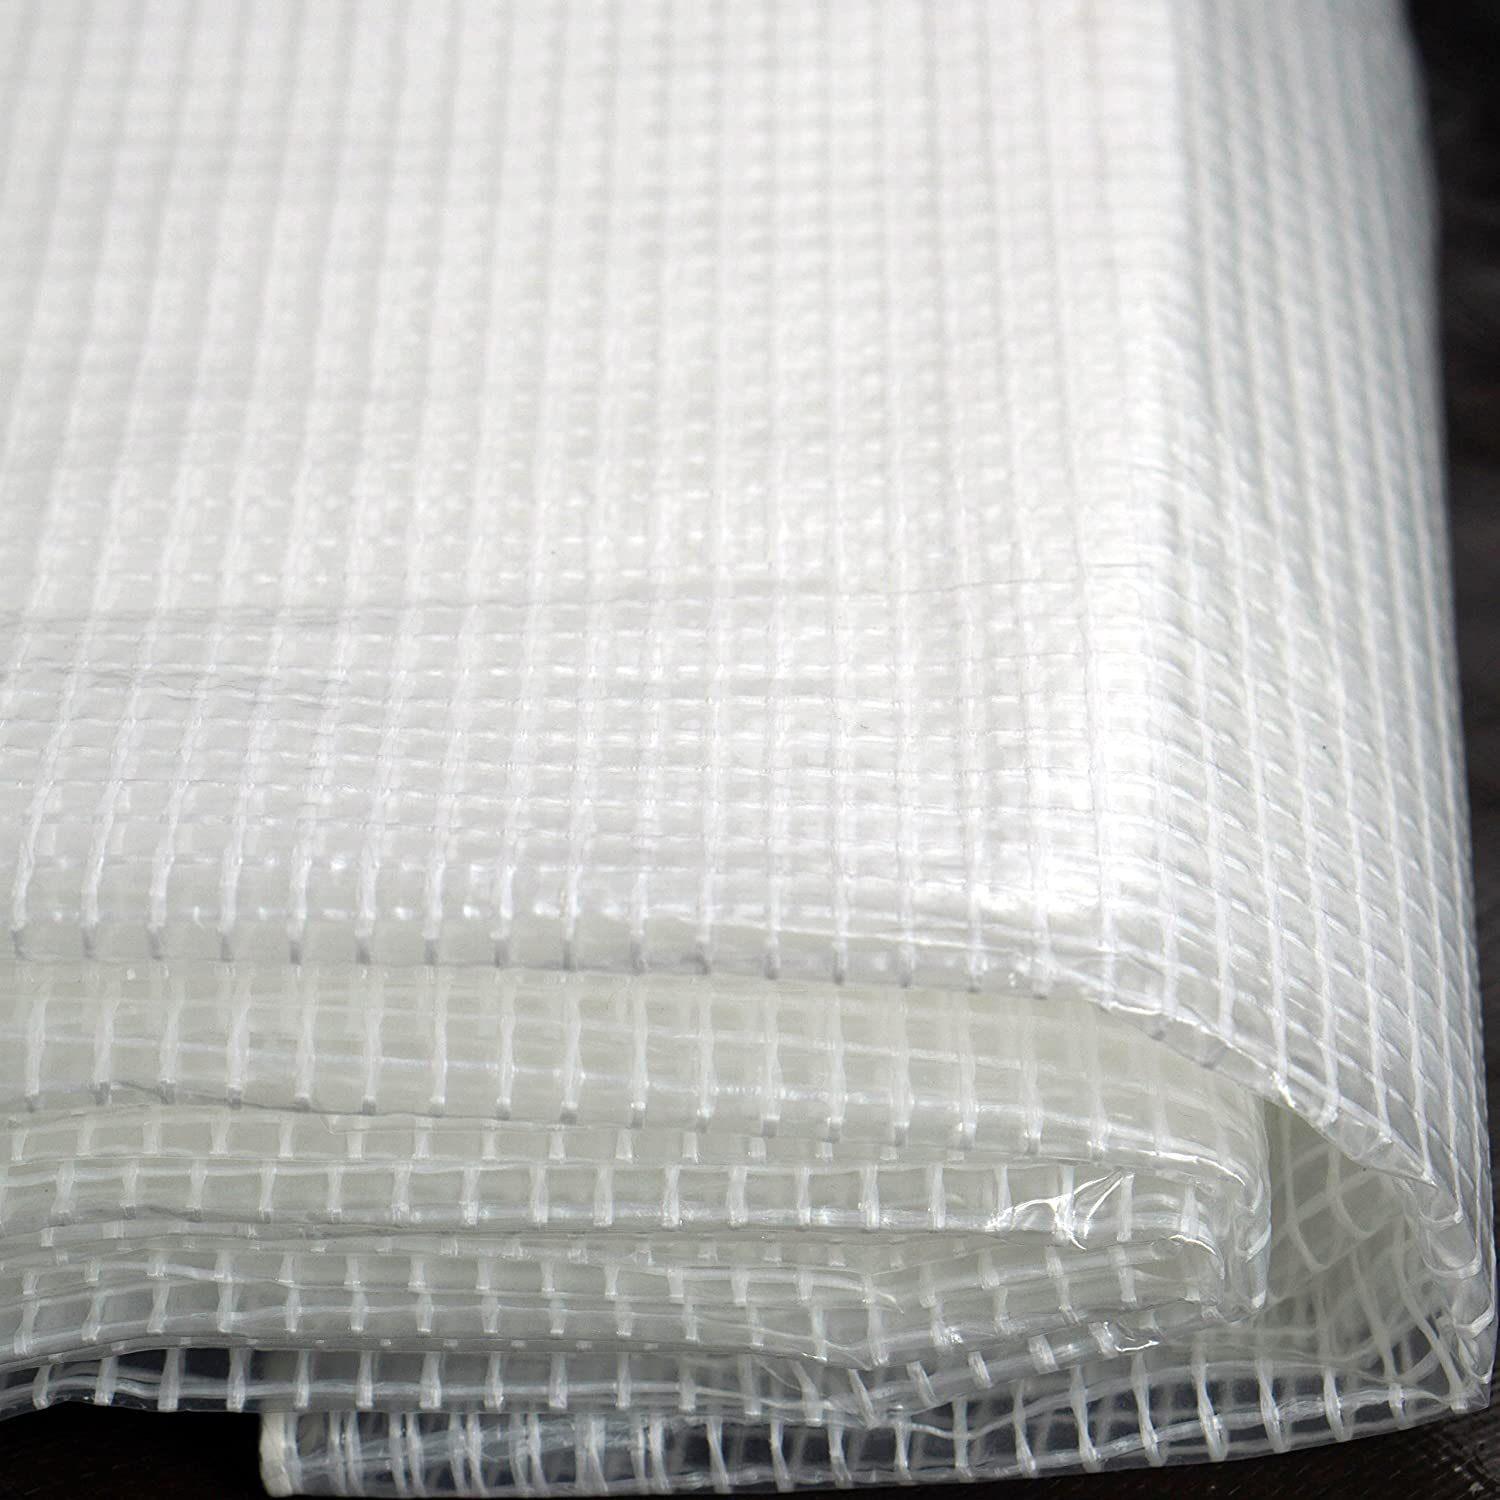 UV Coated Protection for Outdoor Camping RV Truck and Trailers Watershed Innovations Premium Quality 10 mil with 3x3 Mesh Weave for Added Strength 16ft x 20ft Heavy Duty Clear Greenhouse Tarp